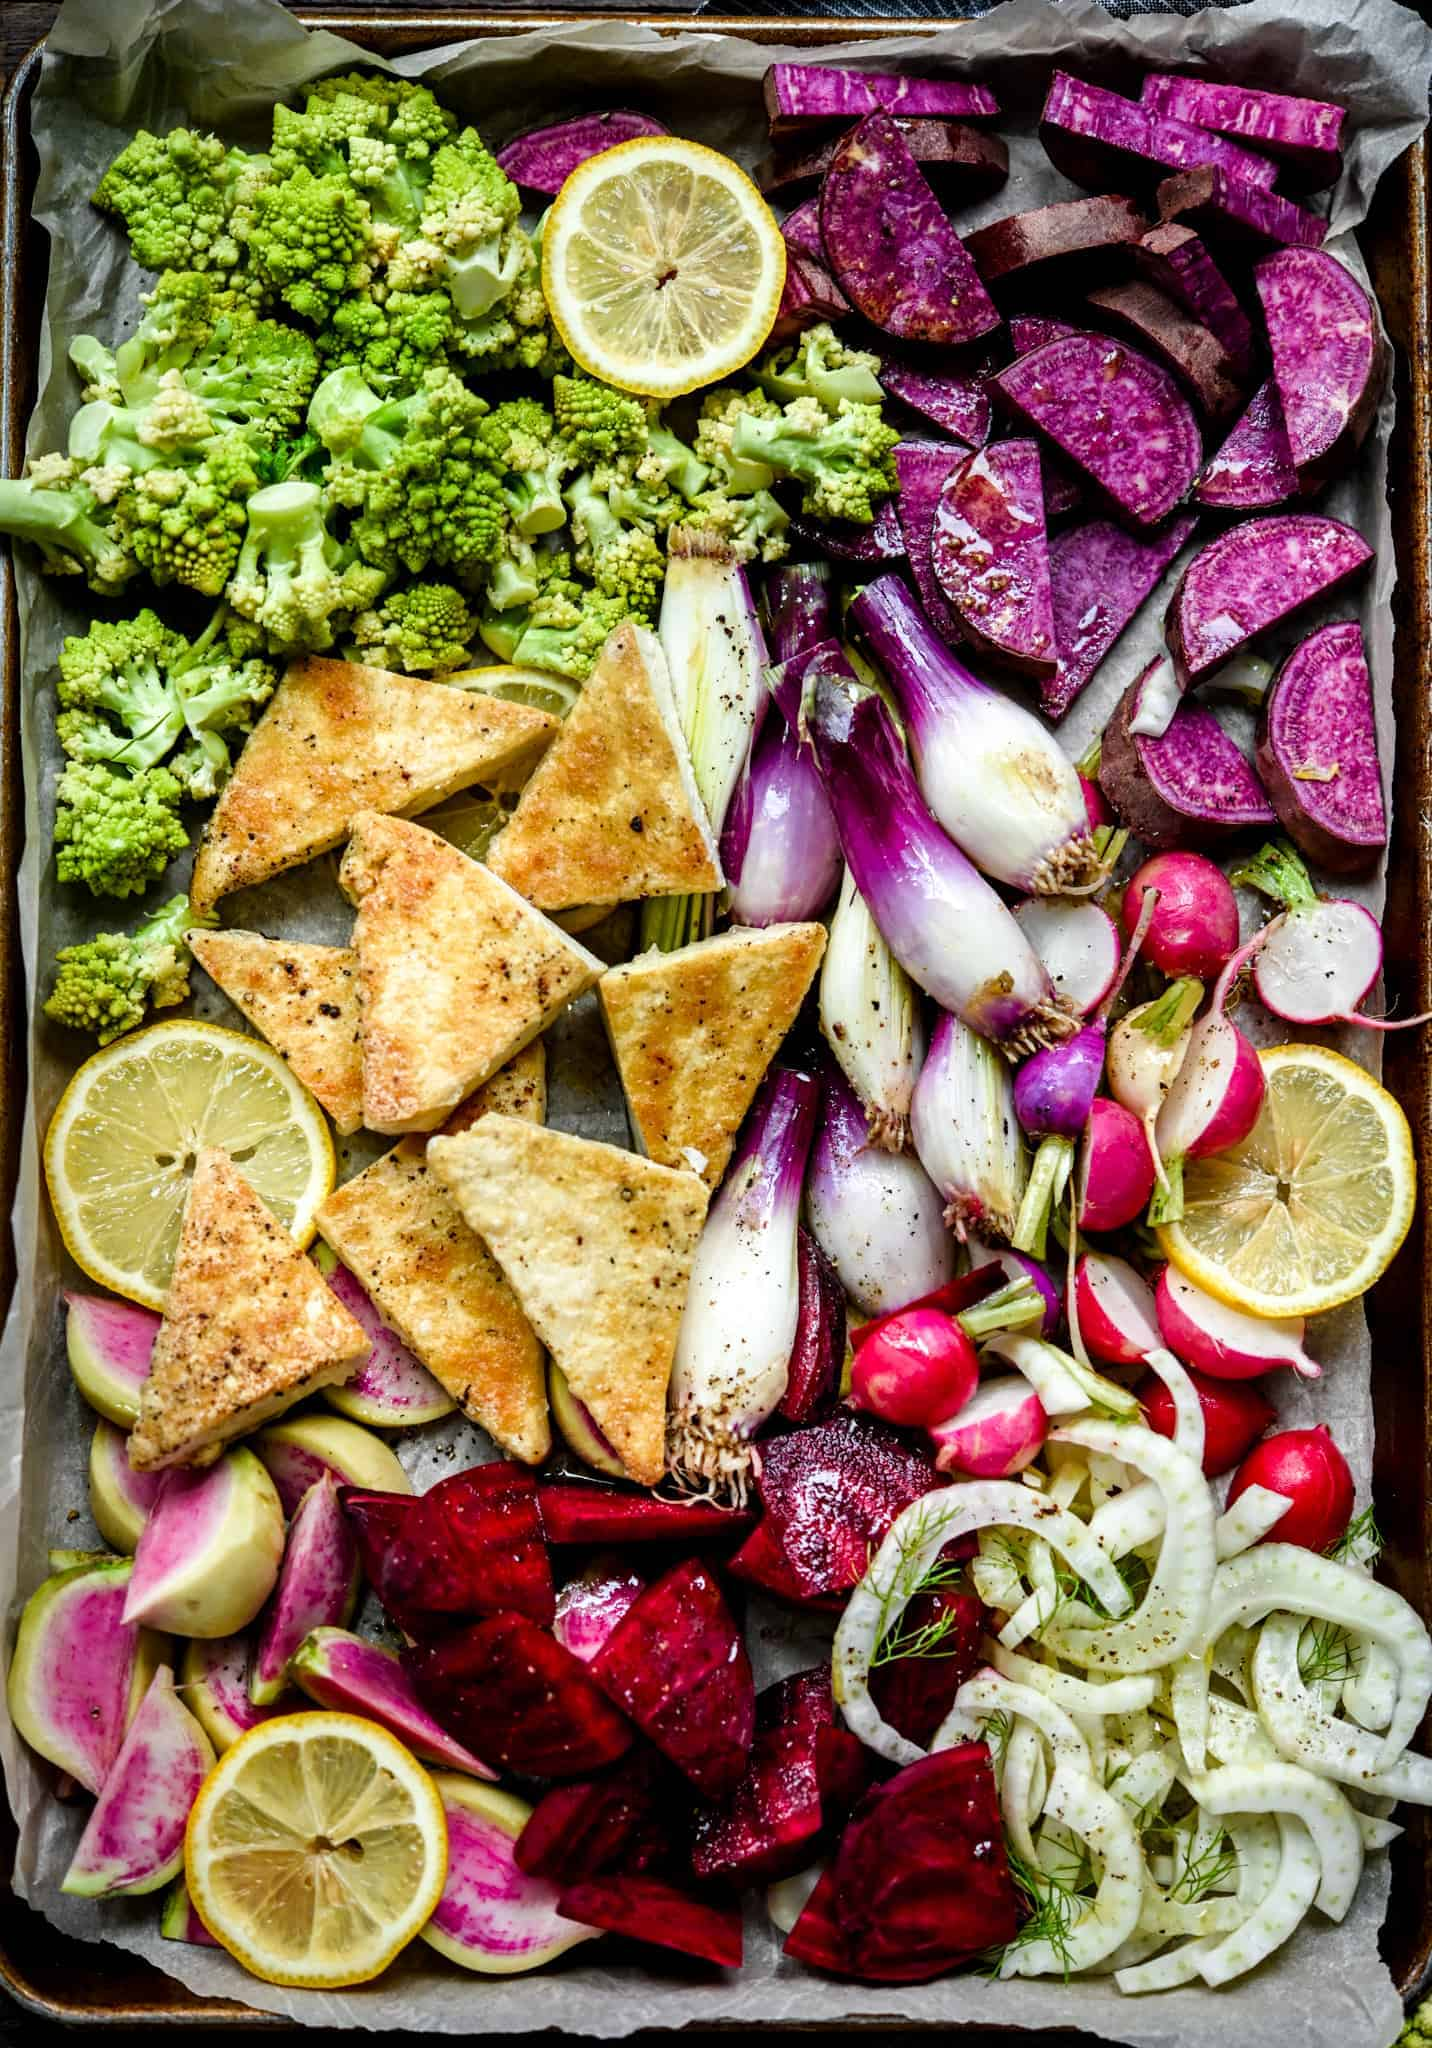 Overhead of sheet pan with uncooked purple, pink and green vegetables and tofu